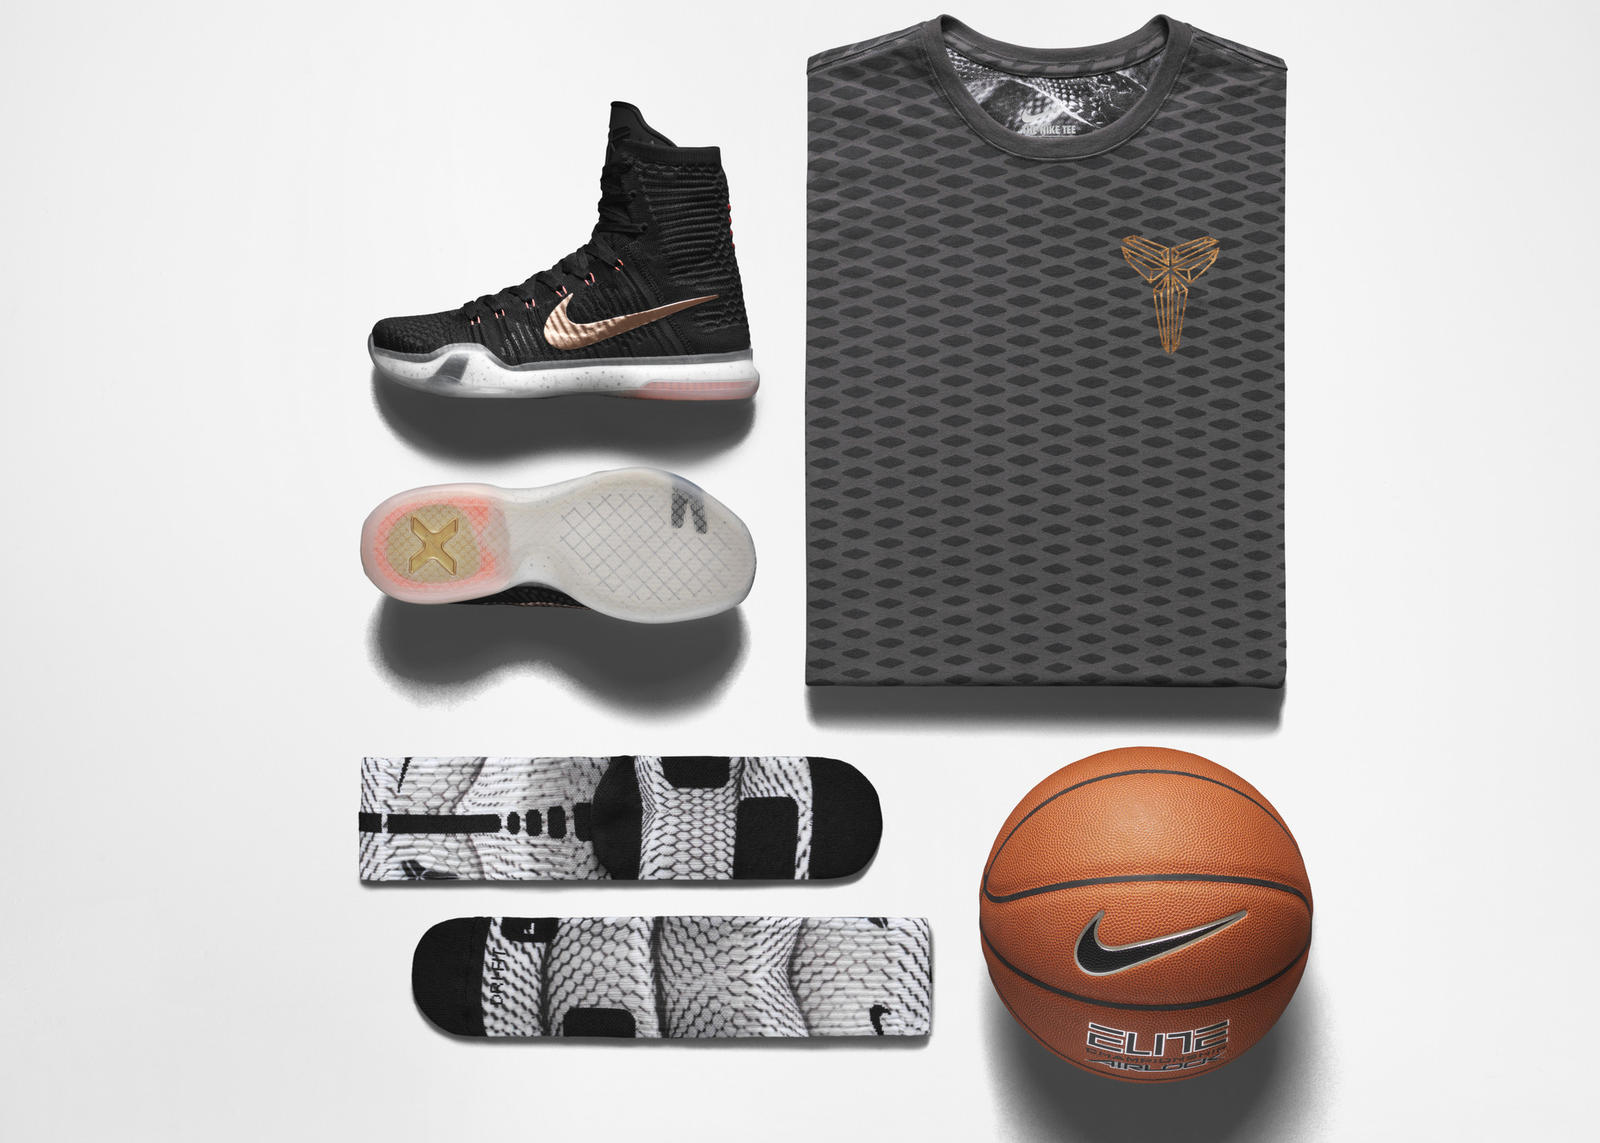 KOBE X Elite Collection April